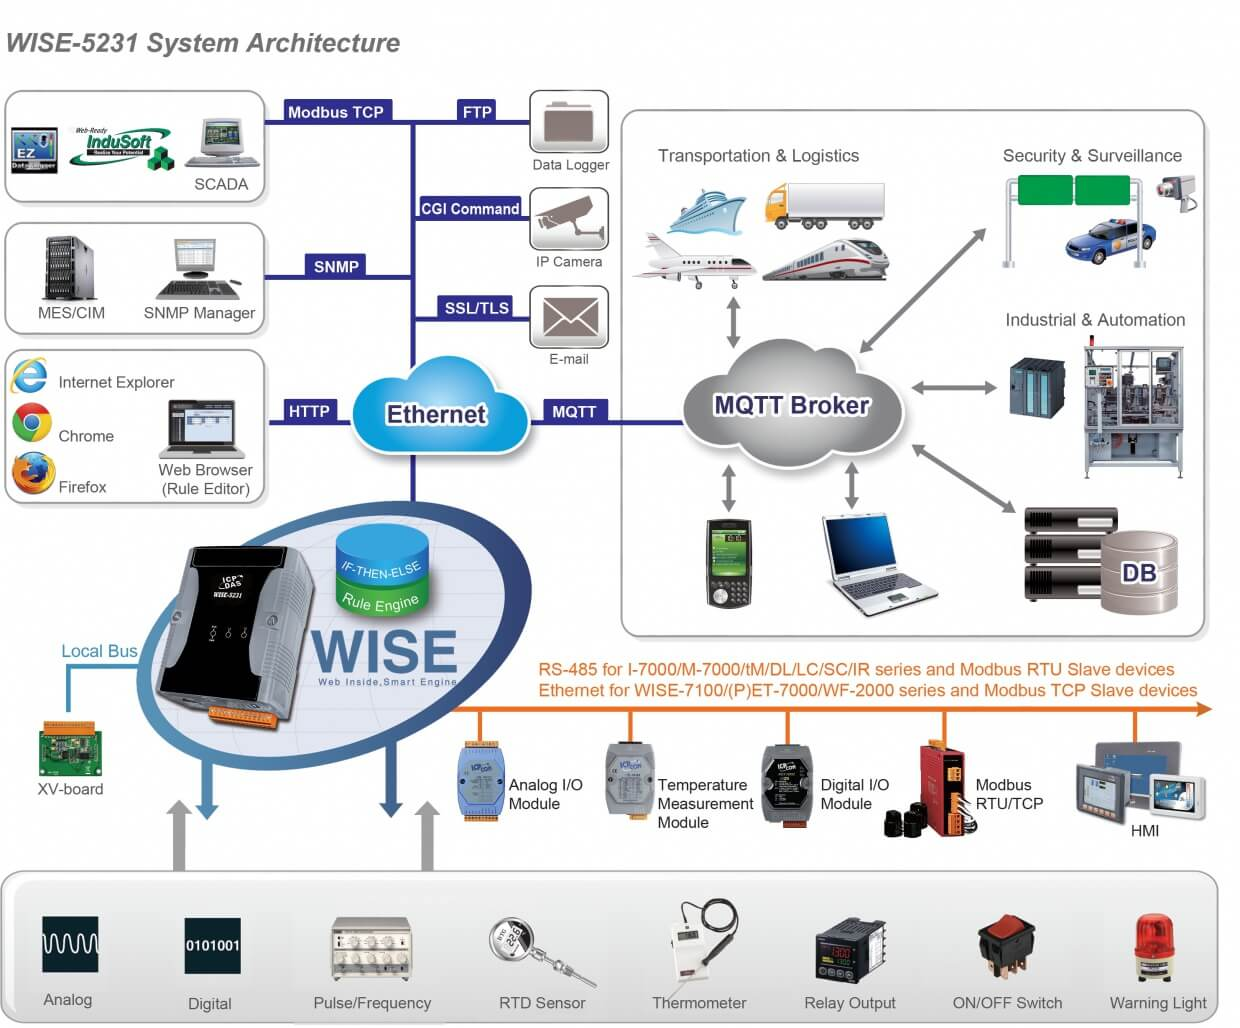 WISE-5231 - An Intelligent Multifunction IoT Controller